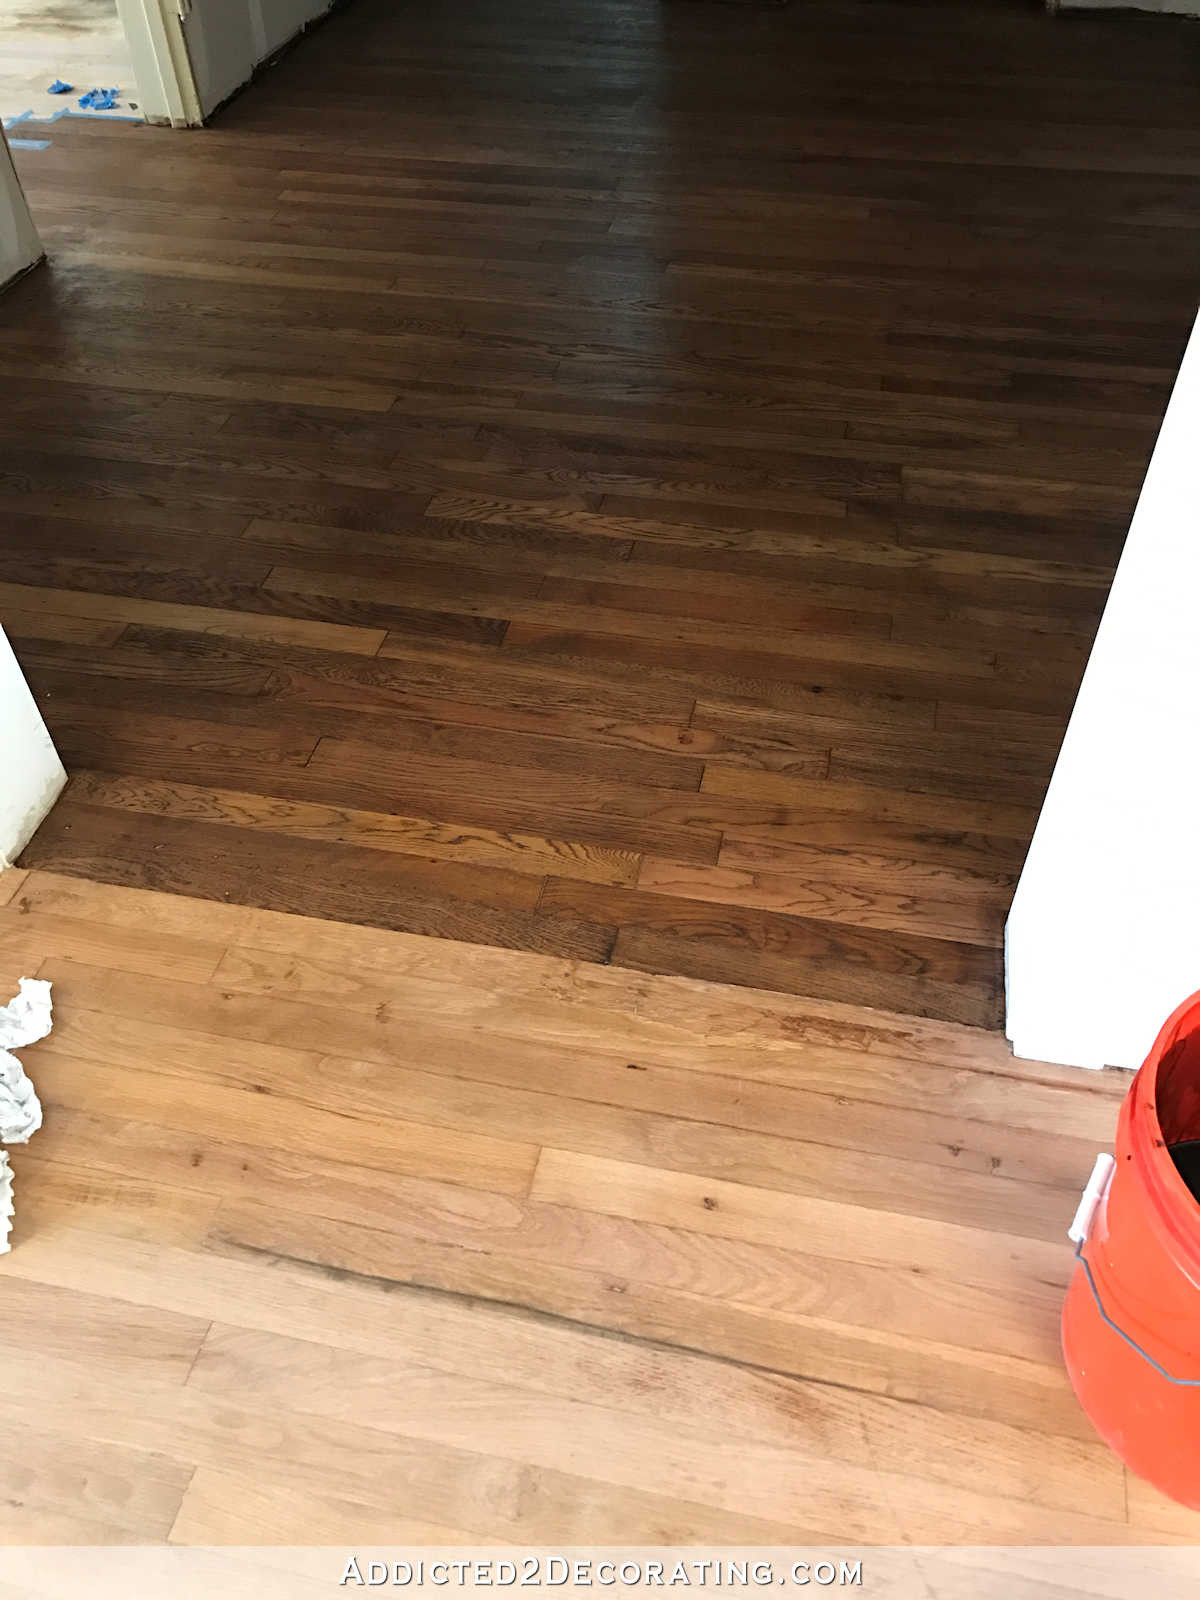 best hardwood floors for pets of adventures in staining my red oak hardwood floors products process within staining red oak hardwood floors 2 tape off one section at a time for